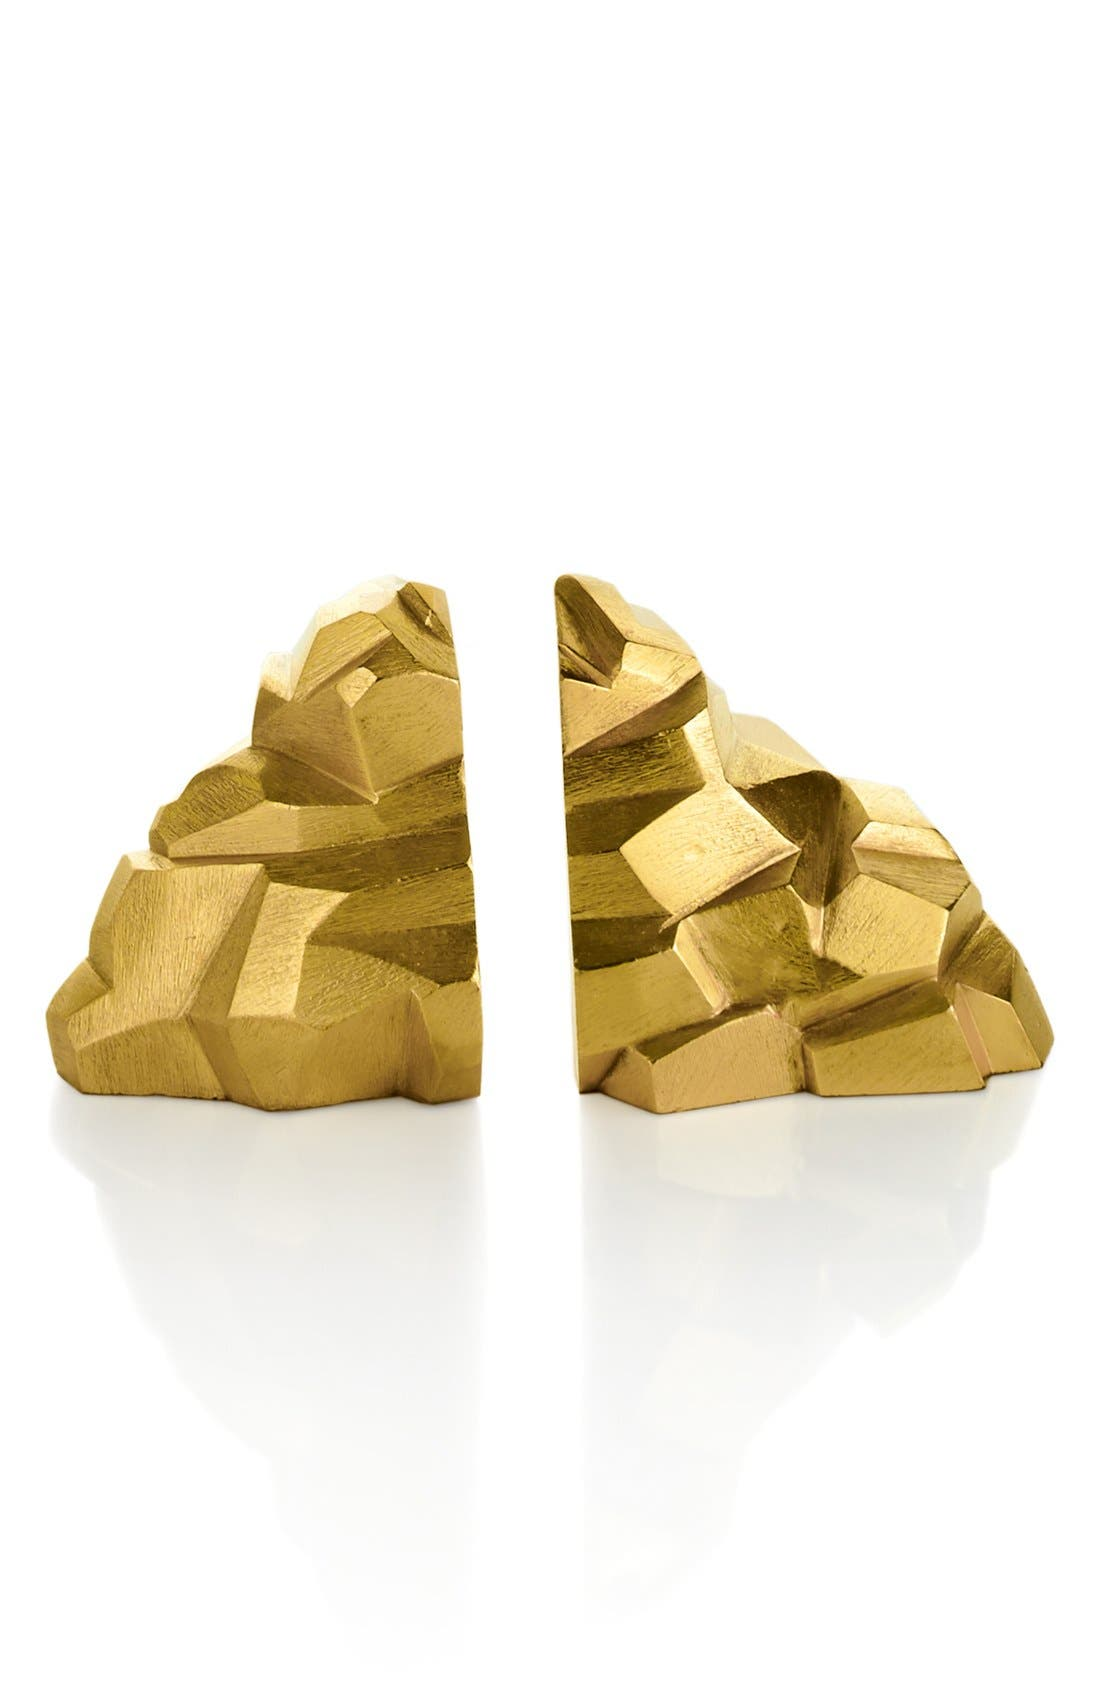 MICHAEL ARAM 'Rock' Bookends